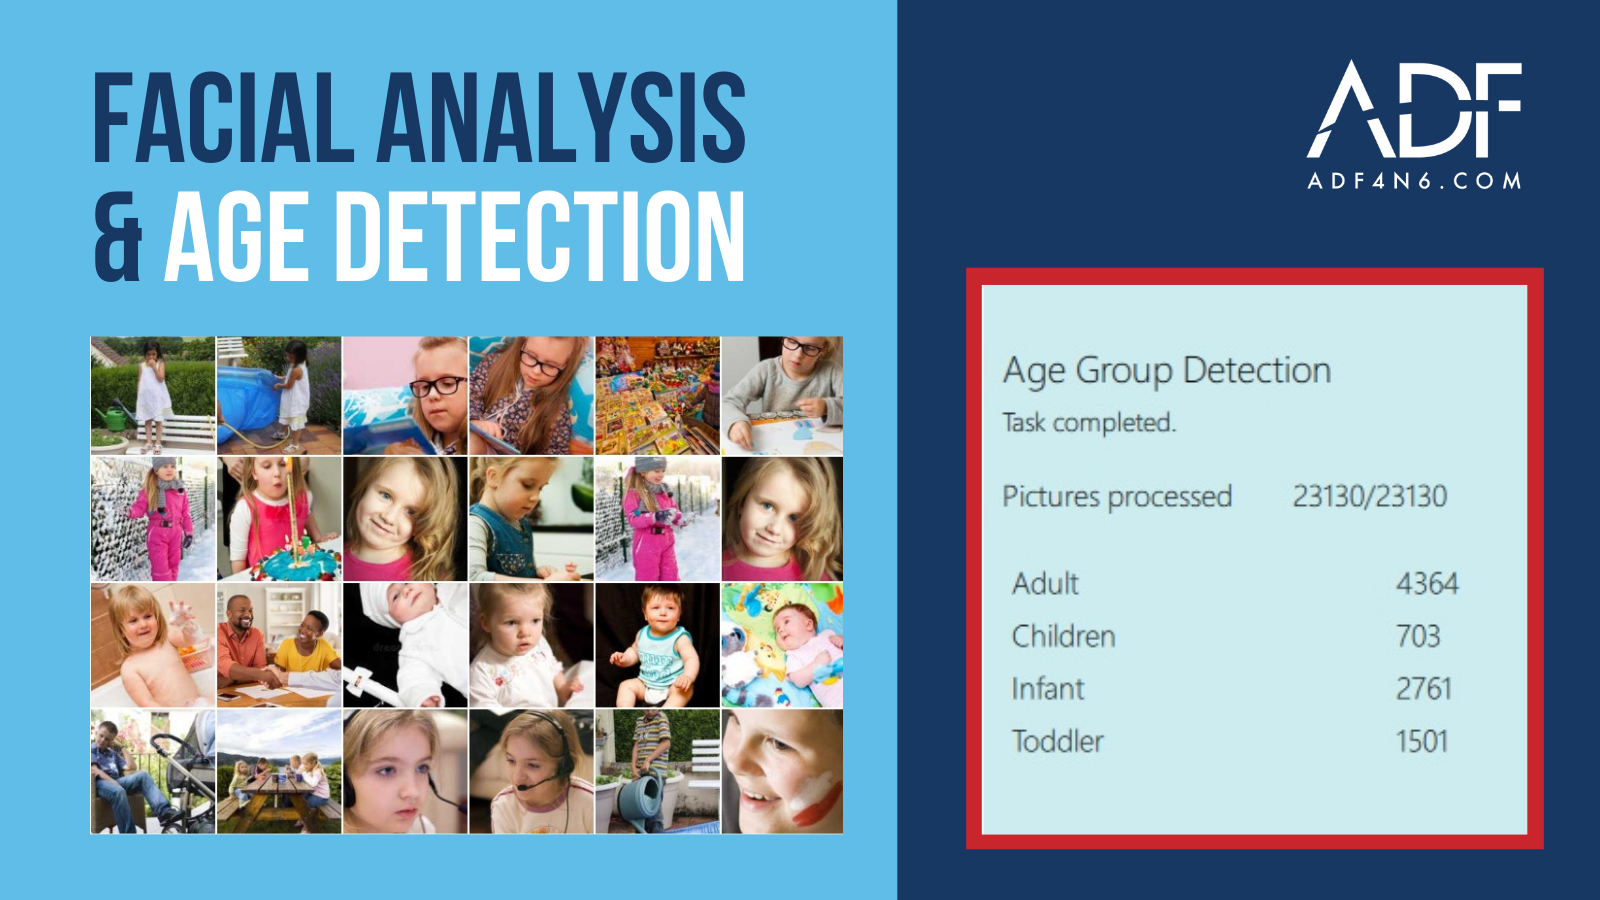 Digital Forensics Age Detection and Facial Analysis